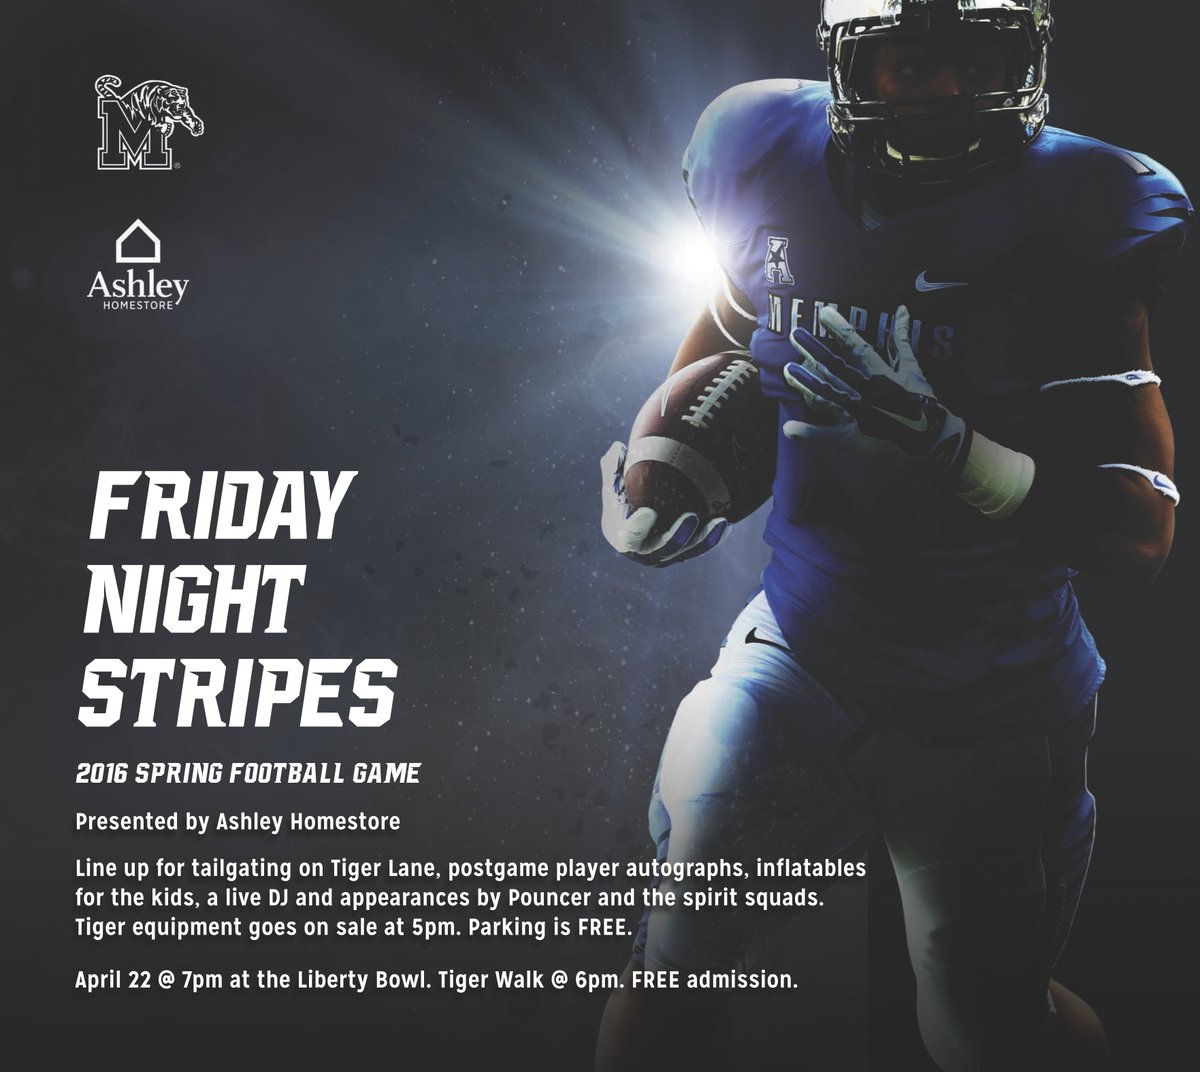 Memphis Tigers On Twitter Friday Night Stripes Is Back